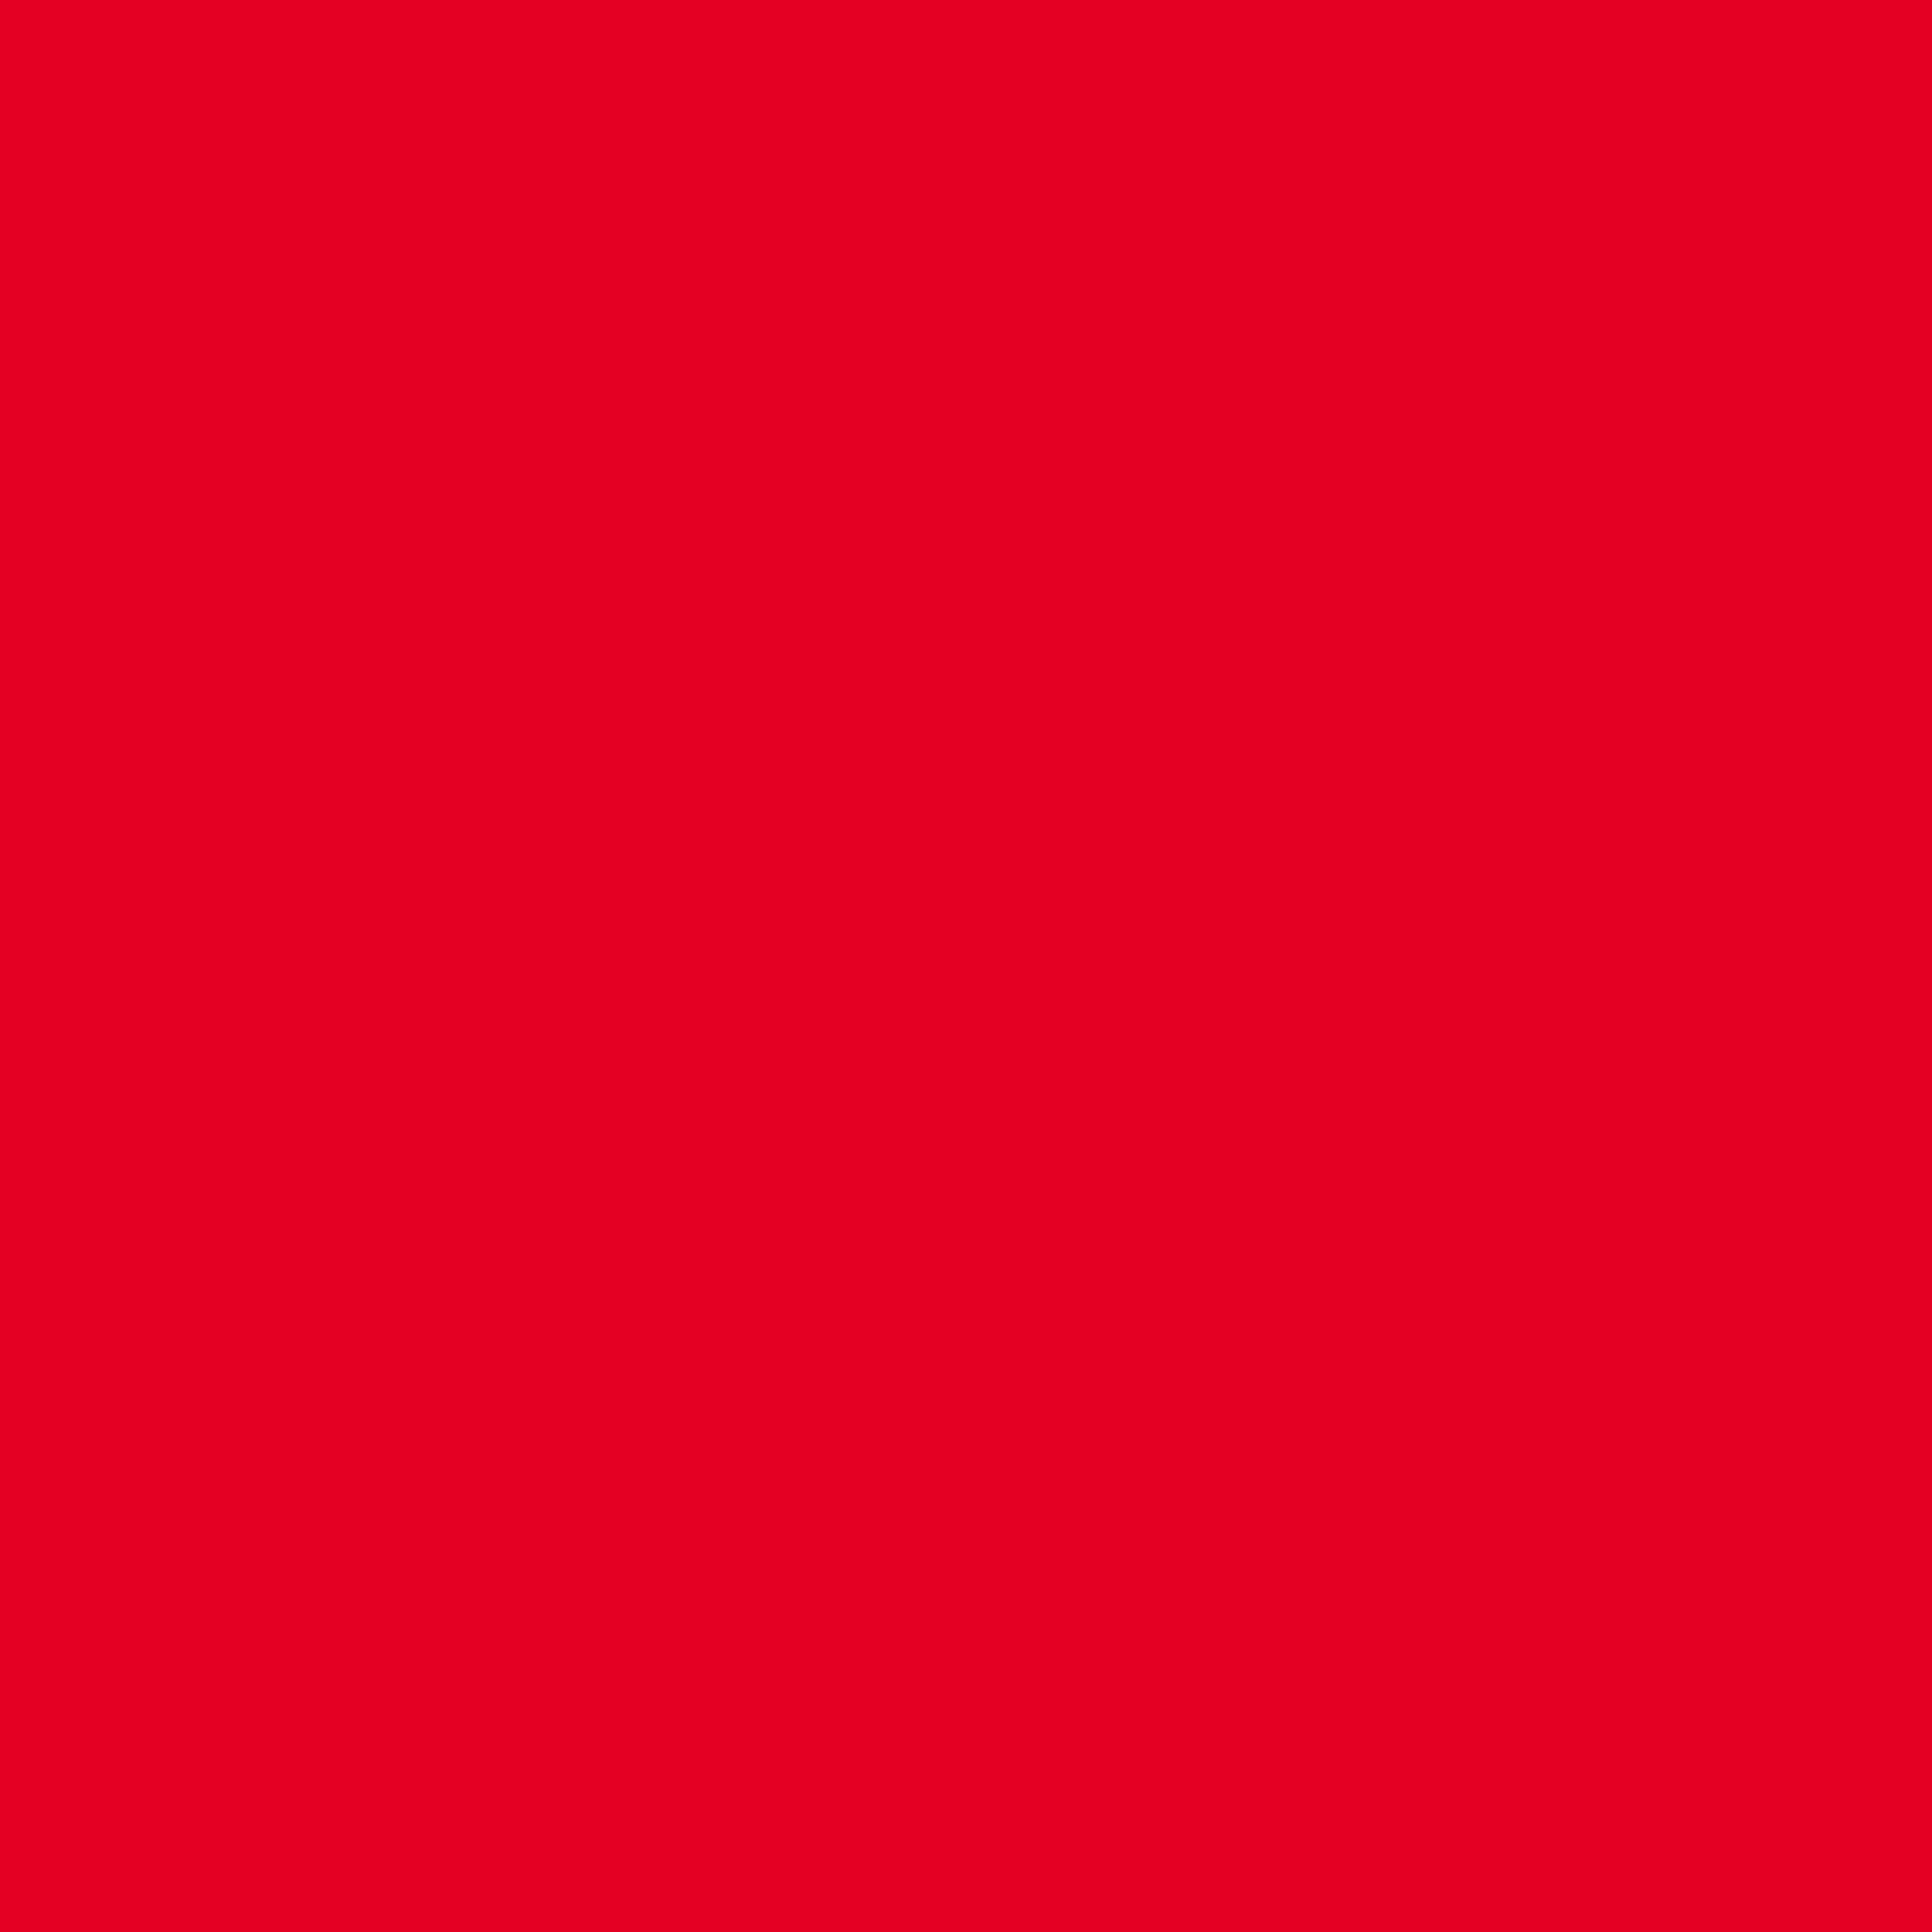 3600x3600 Cadmium Red Solid Color Background